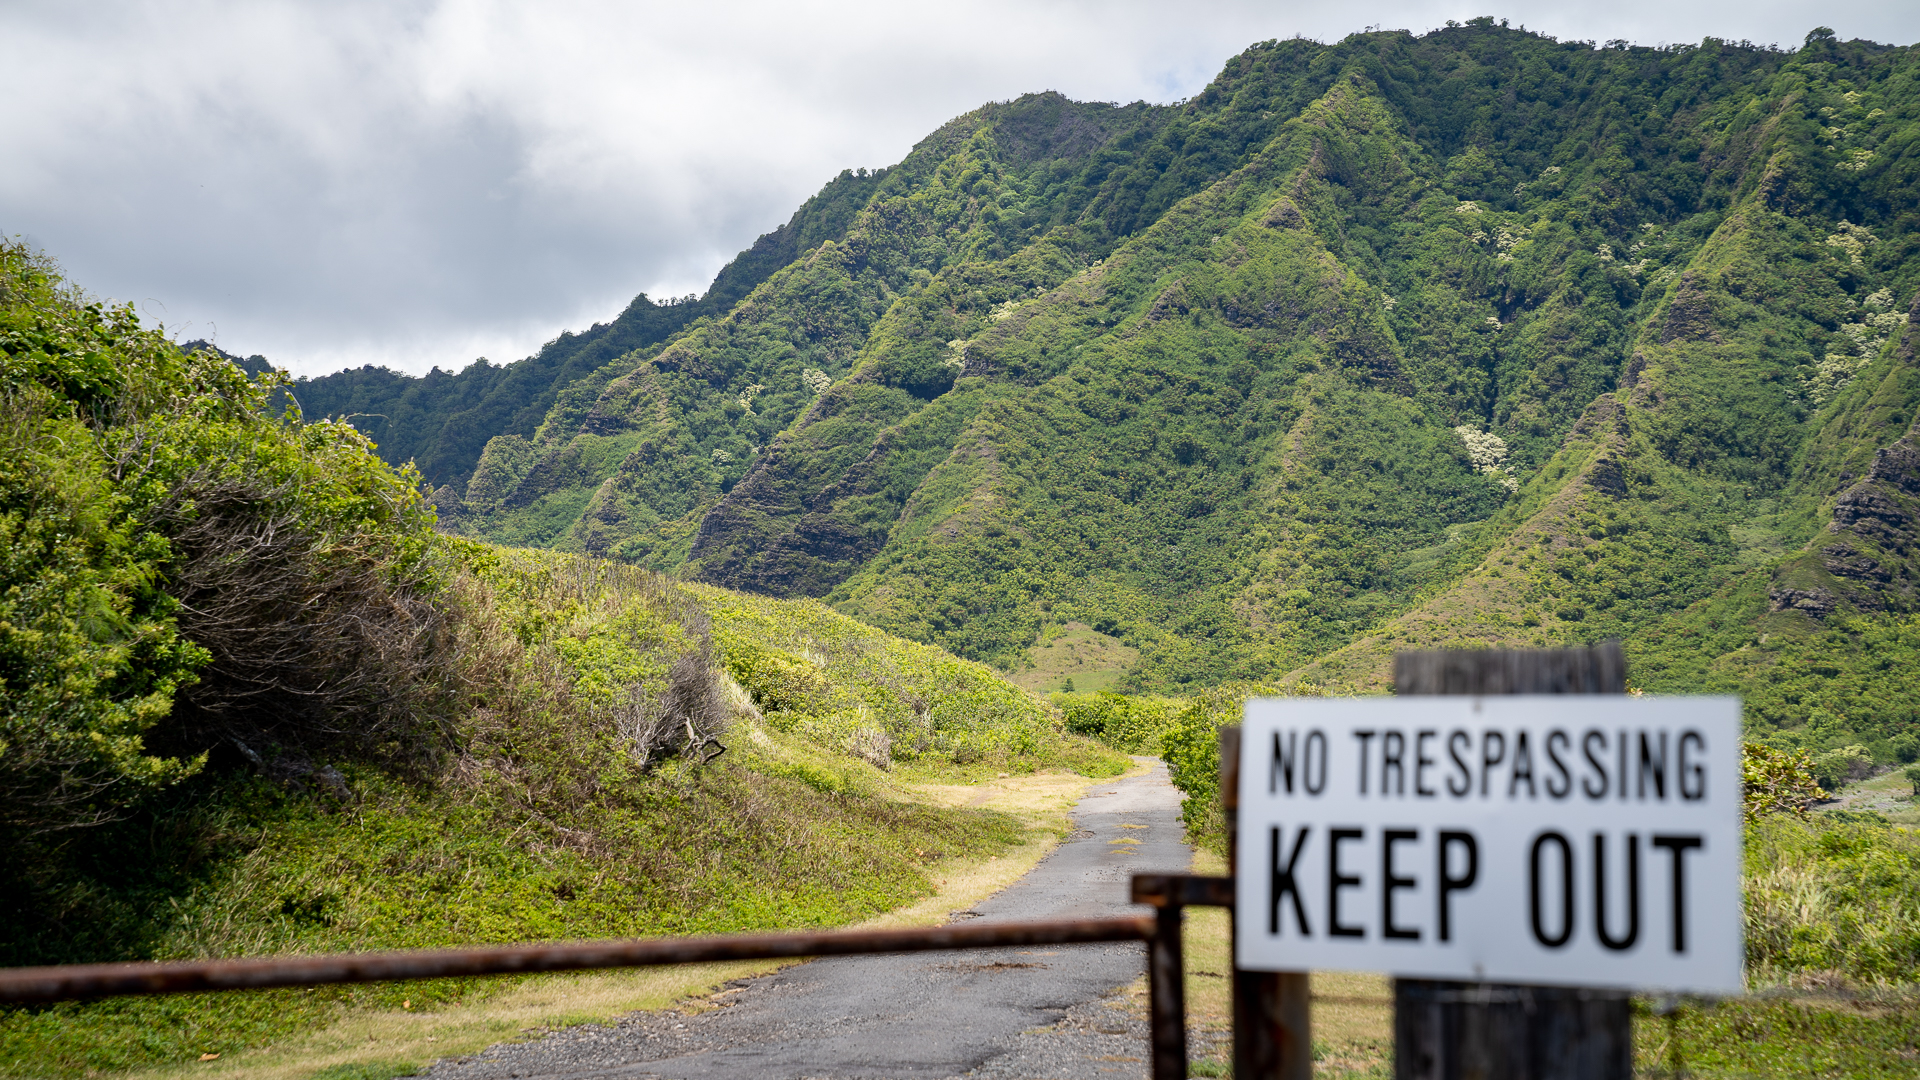 Watersheds Kualoa Ranch Trespassing